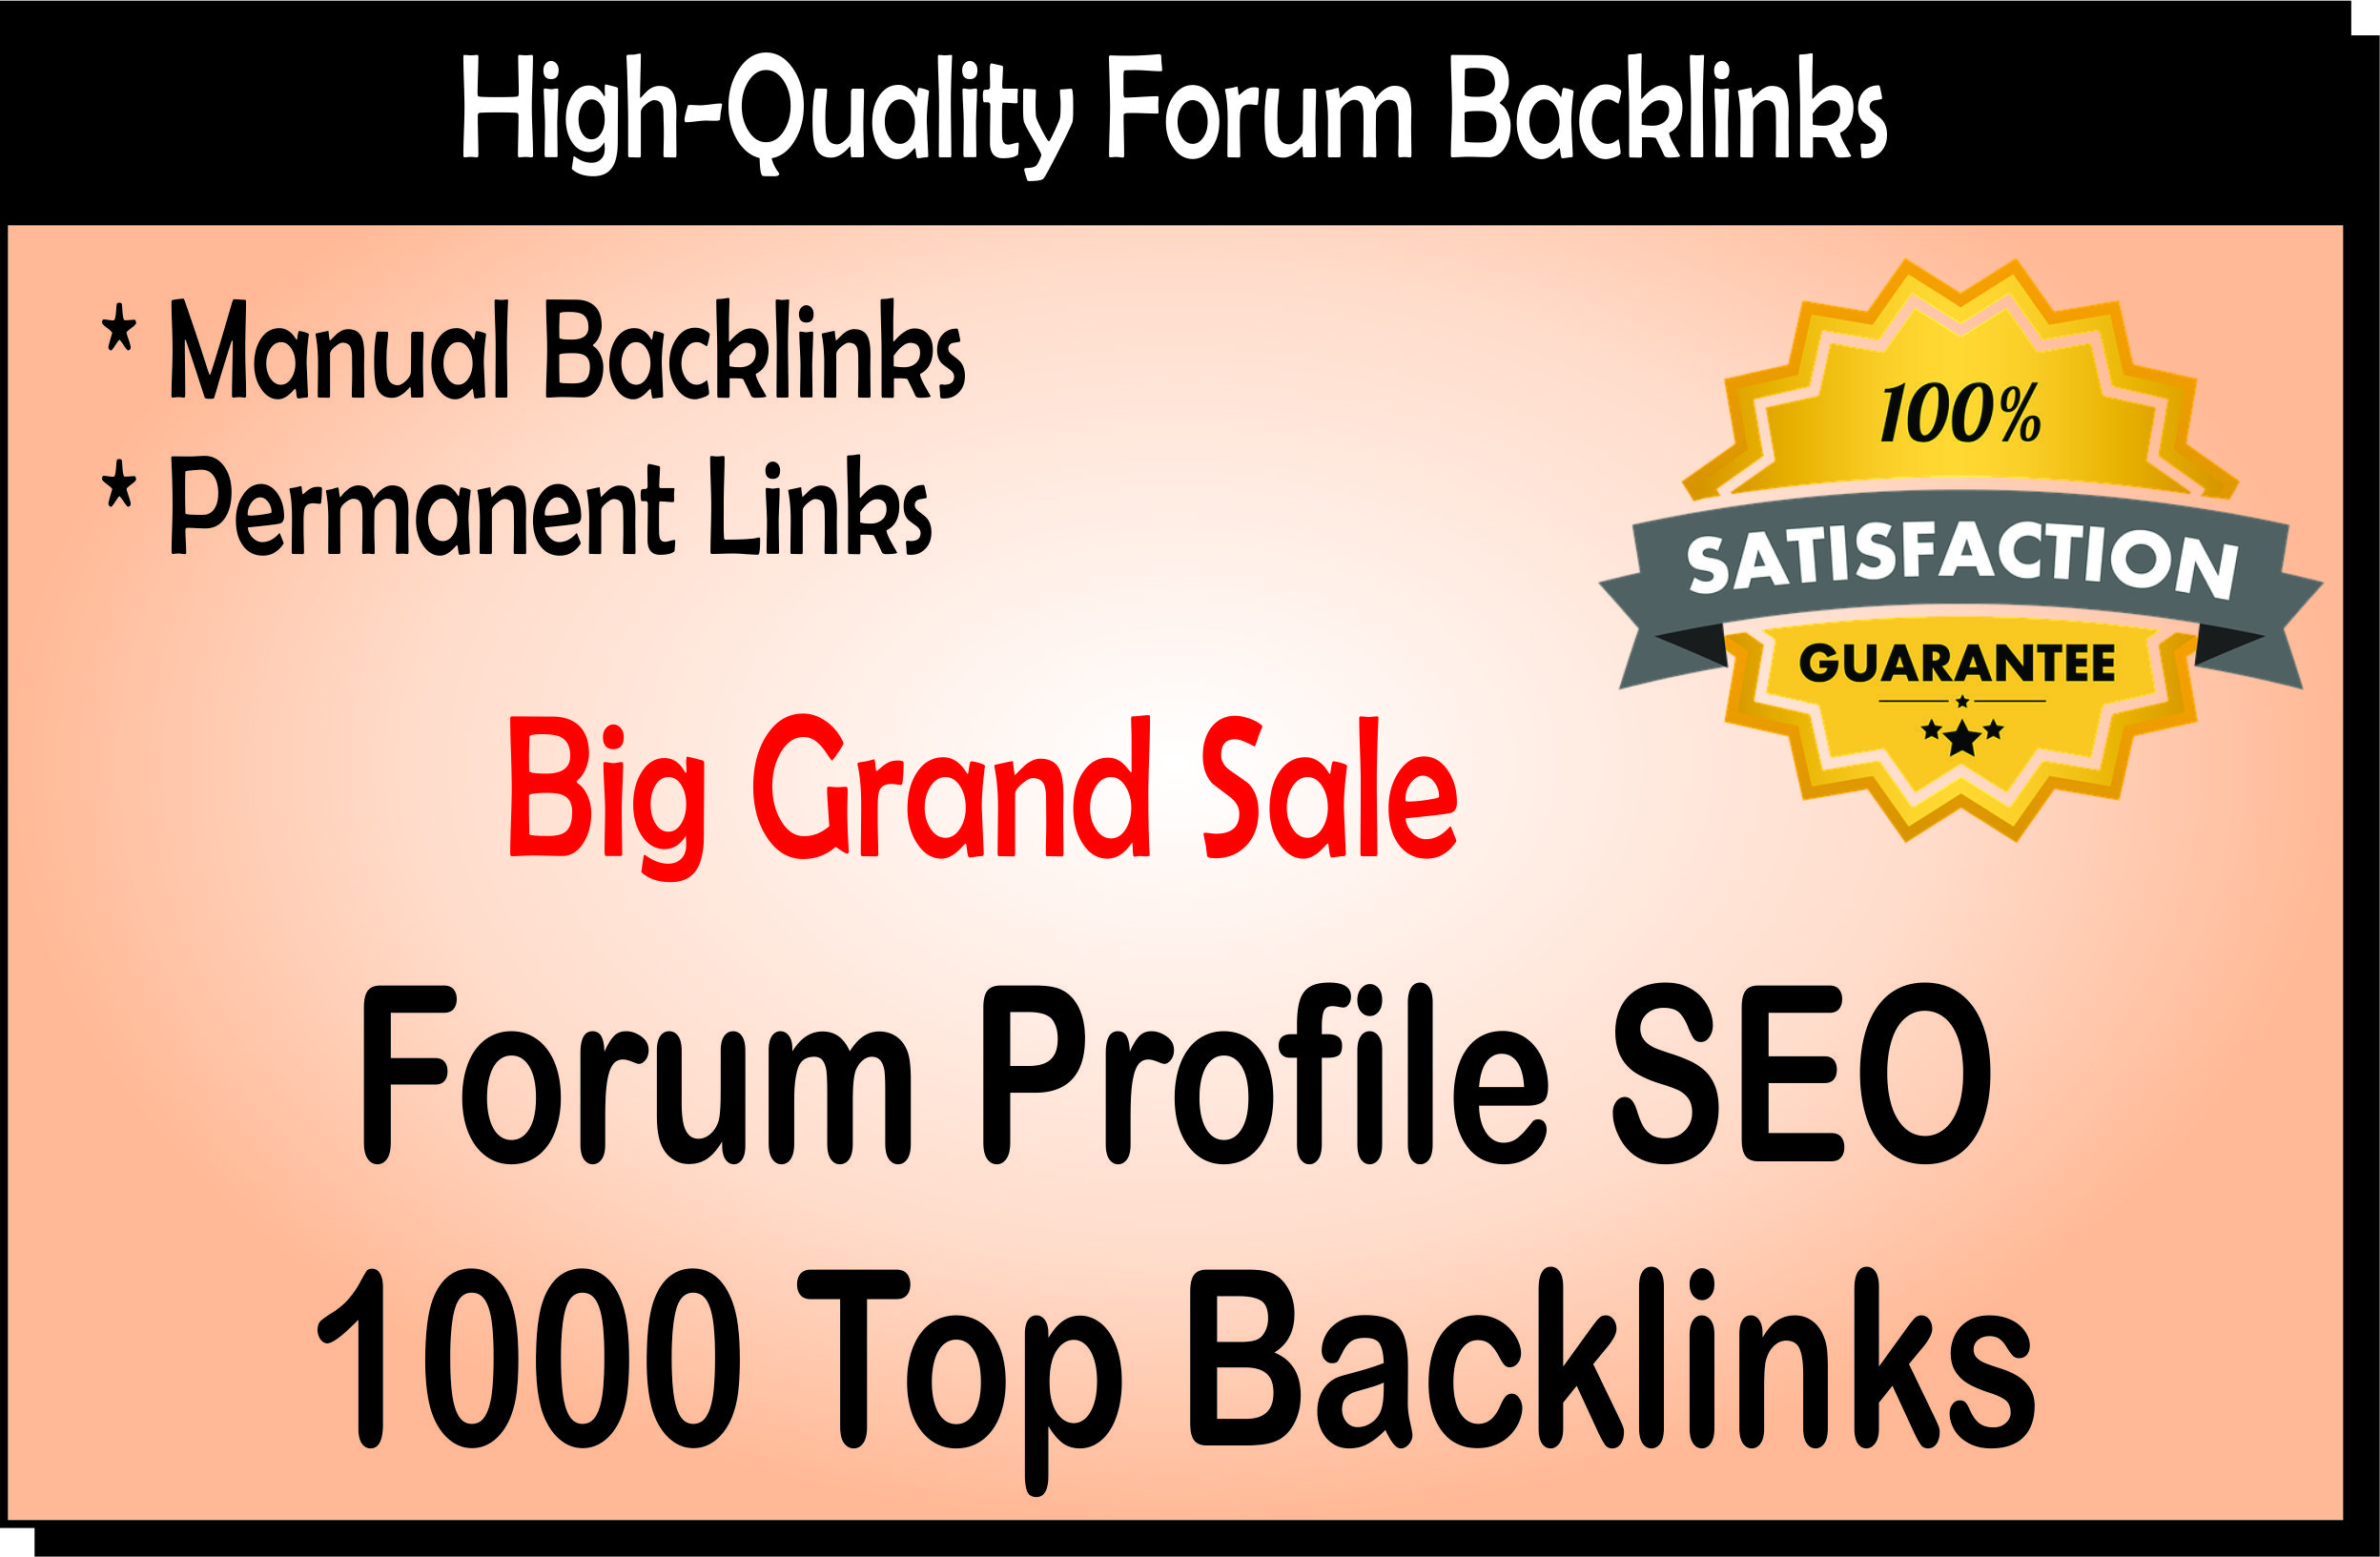 You Will Get 1000 White Hat Dofollow SEO Forum Backlinks Posting